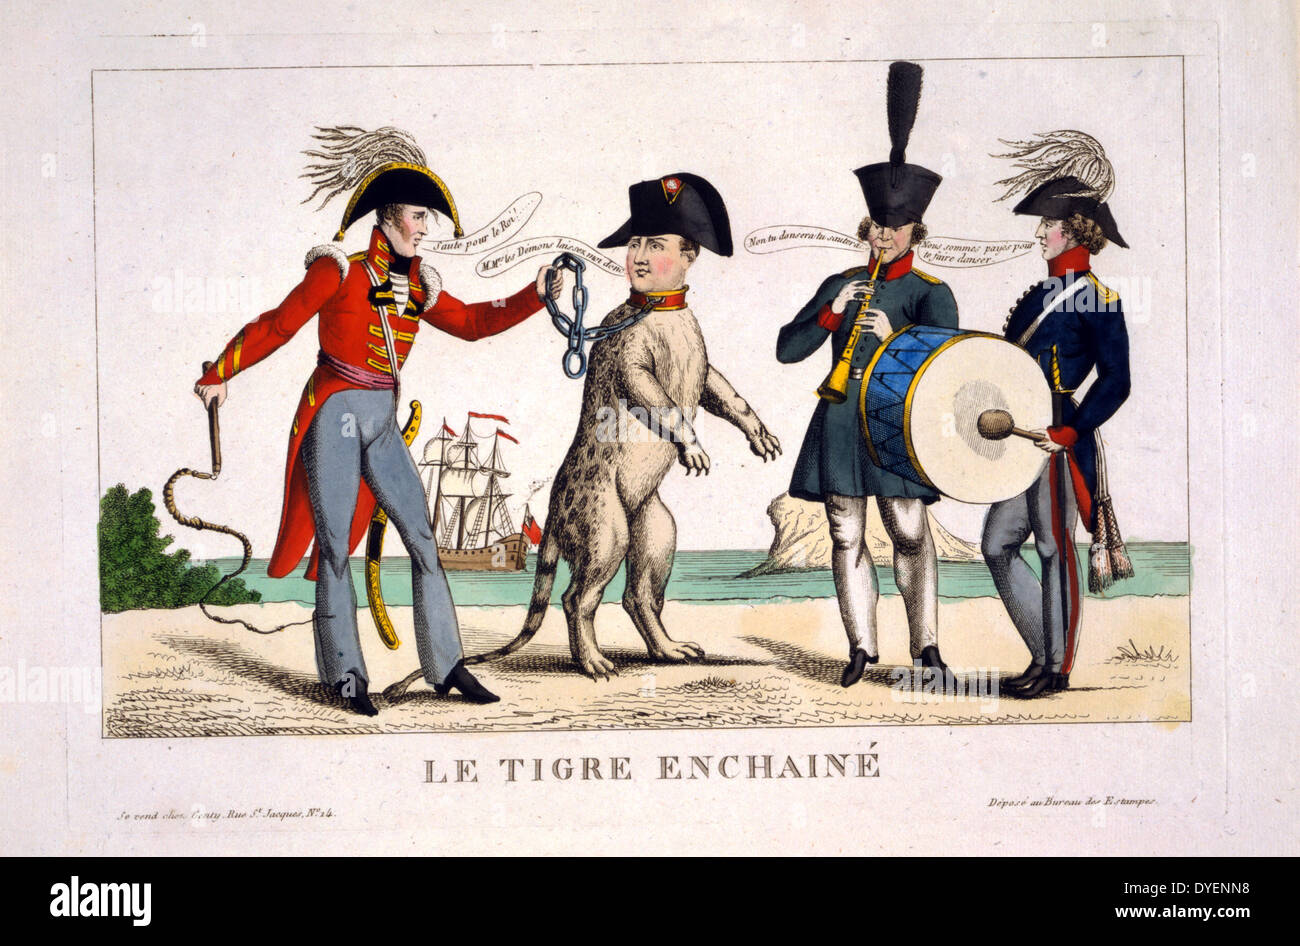 Le tigre enchainé 1815. Cartoon showing Napoleon I as a tiger in chains - Stock Image